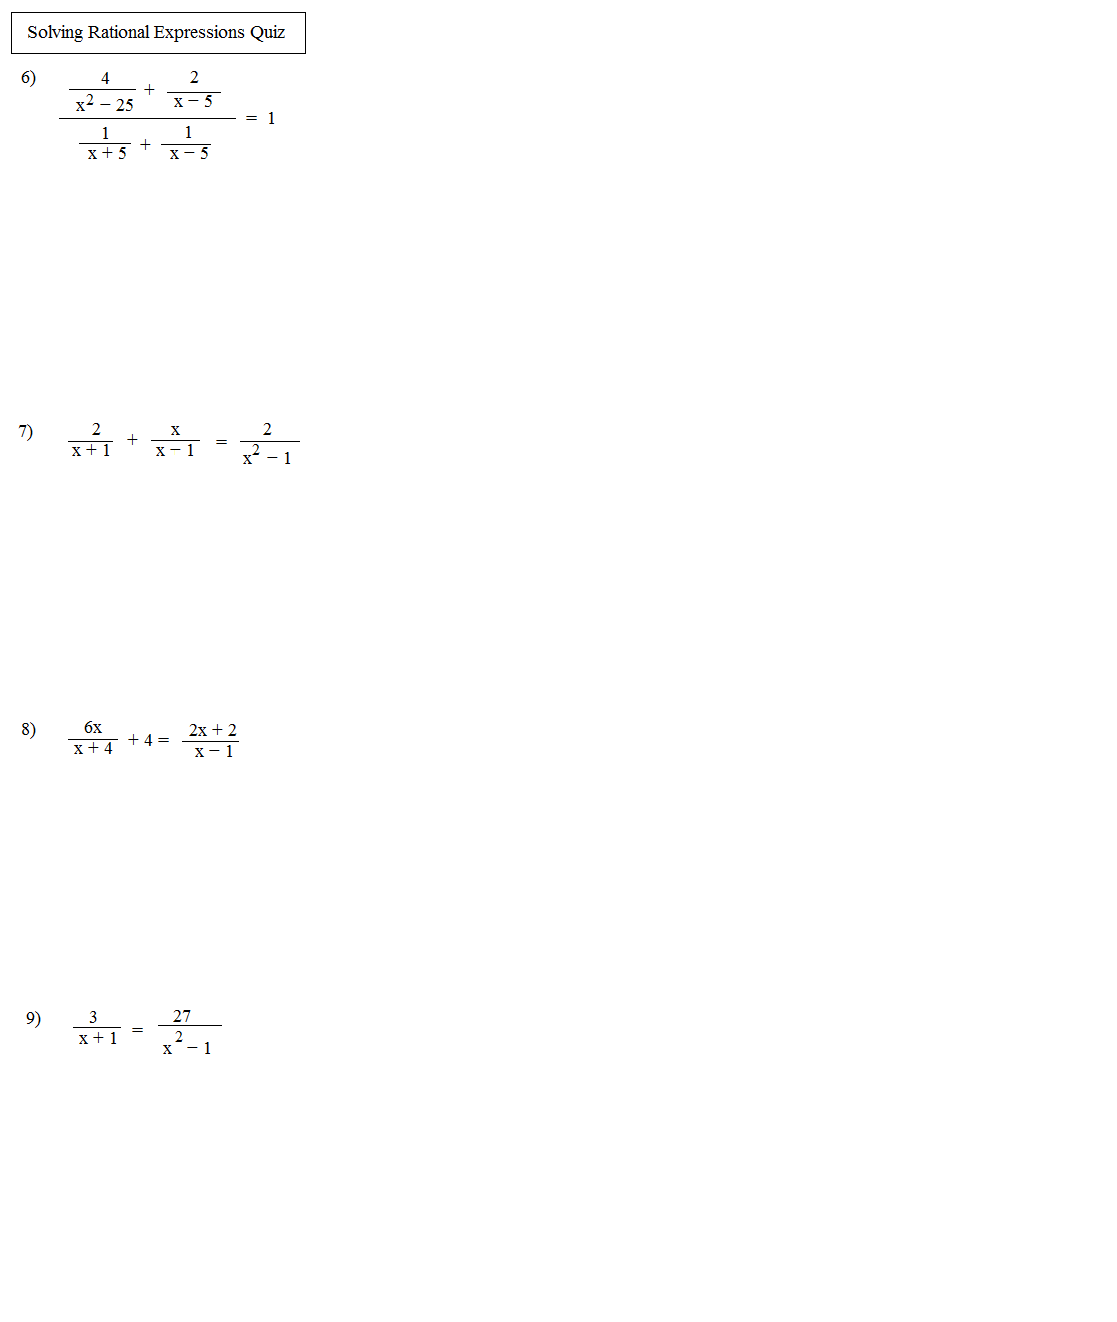 Solving Rational Equations Worksheet Multiple Choice  rational equations practice problems